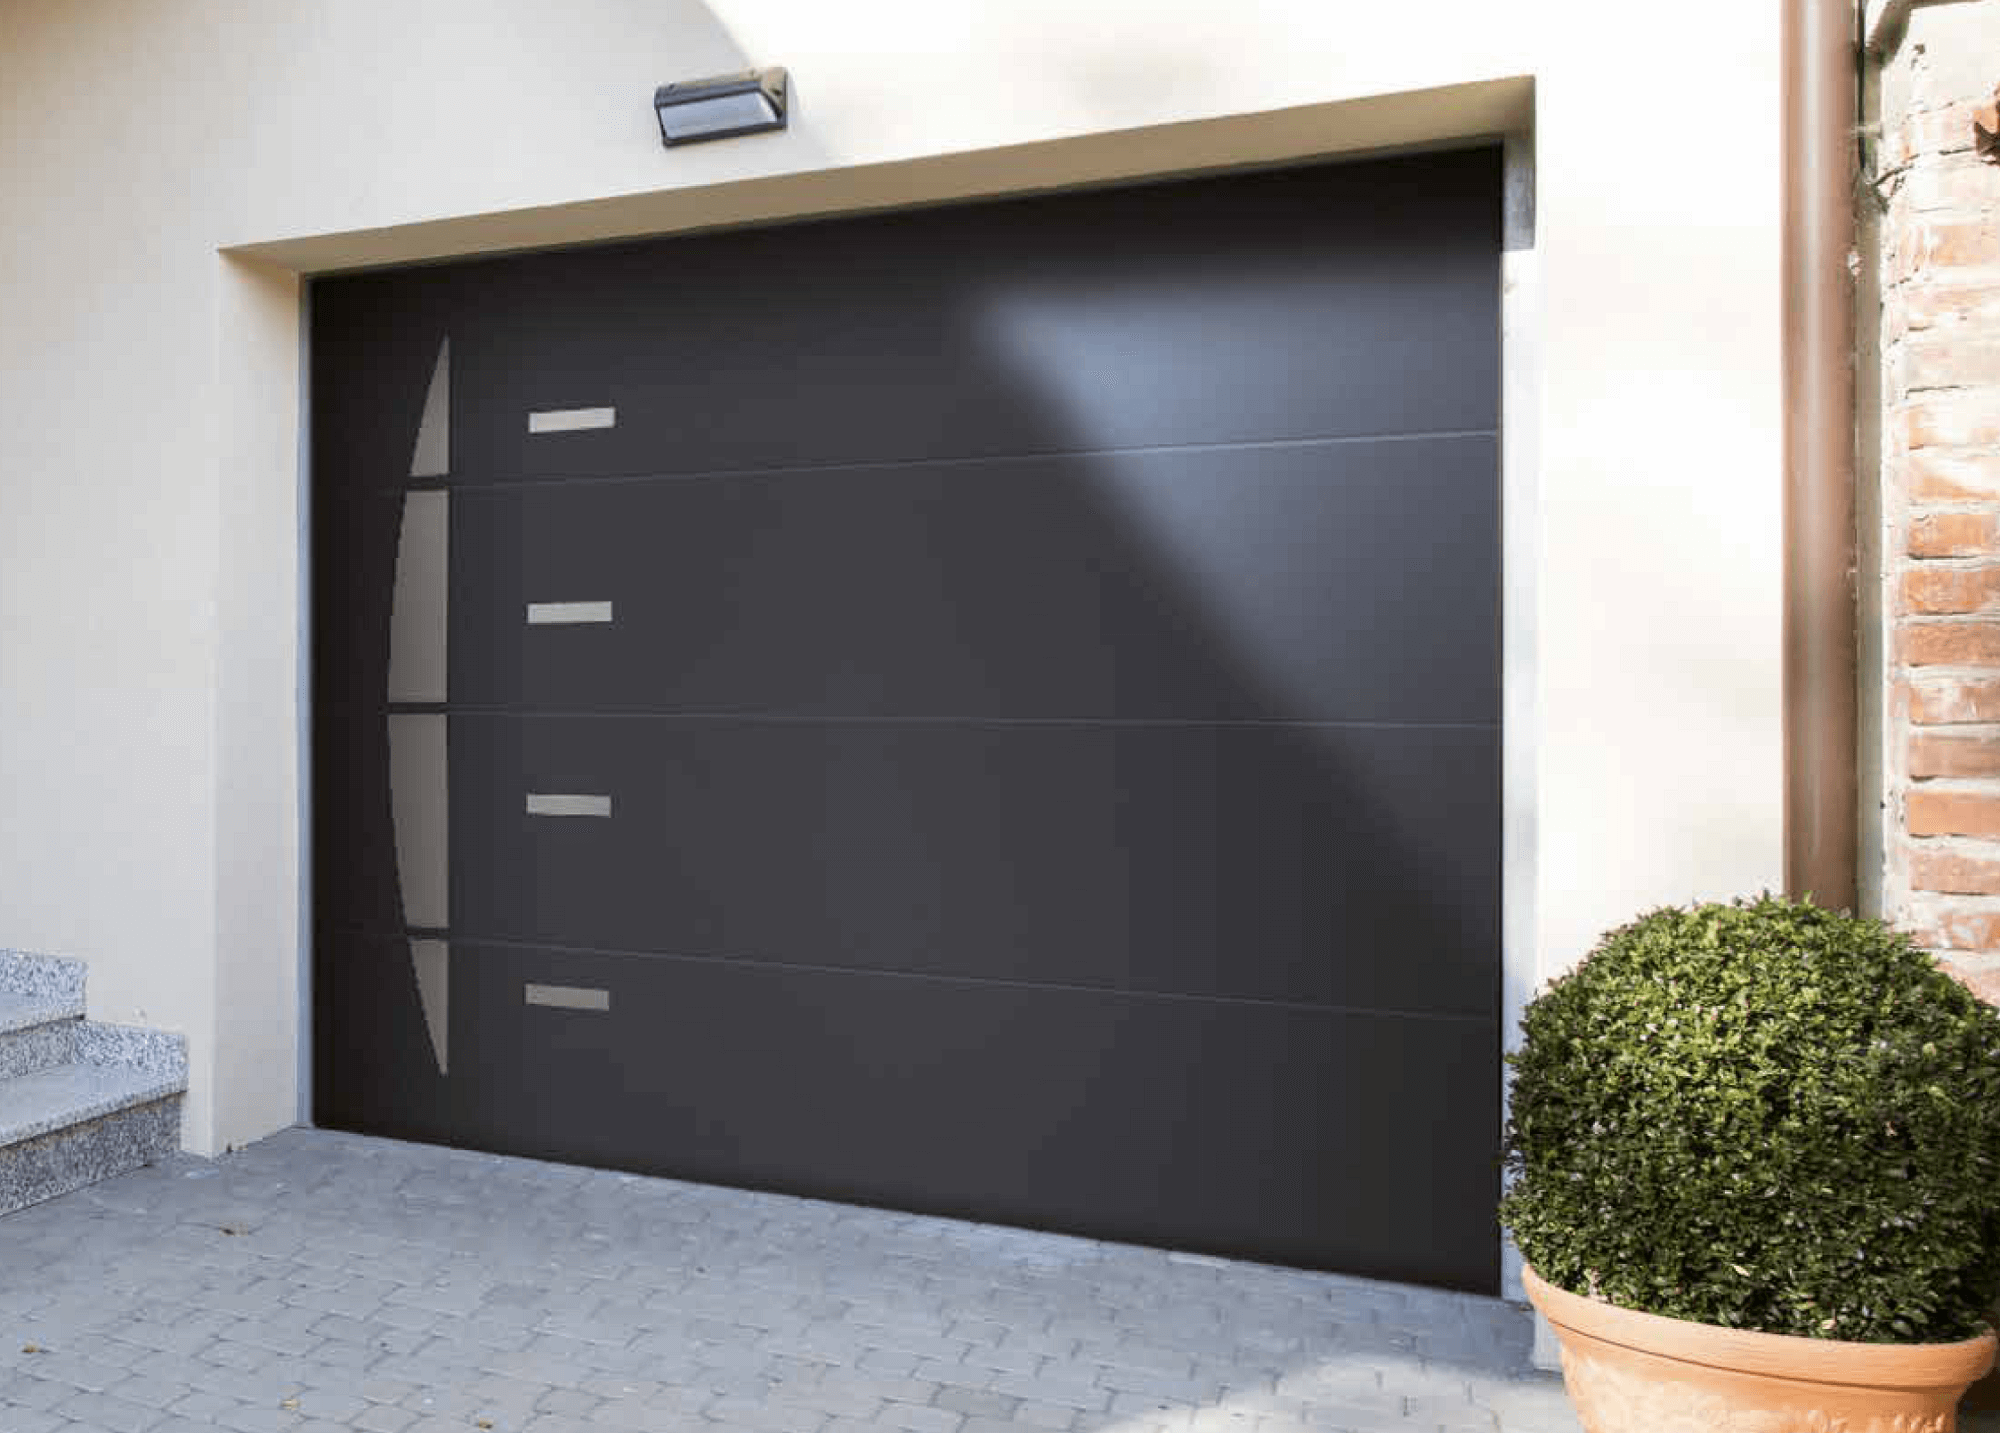 Porte de garage motoris e portes de garage sur mesure for Porte de garage enroulable hormann prix